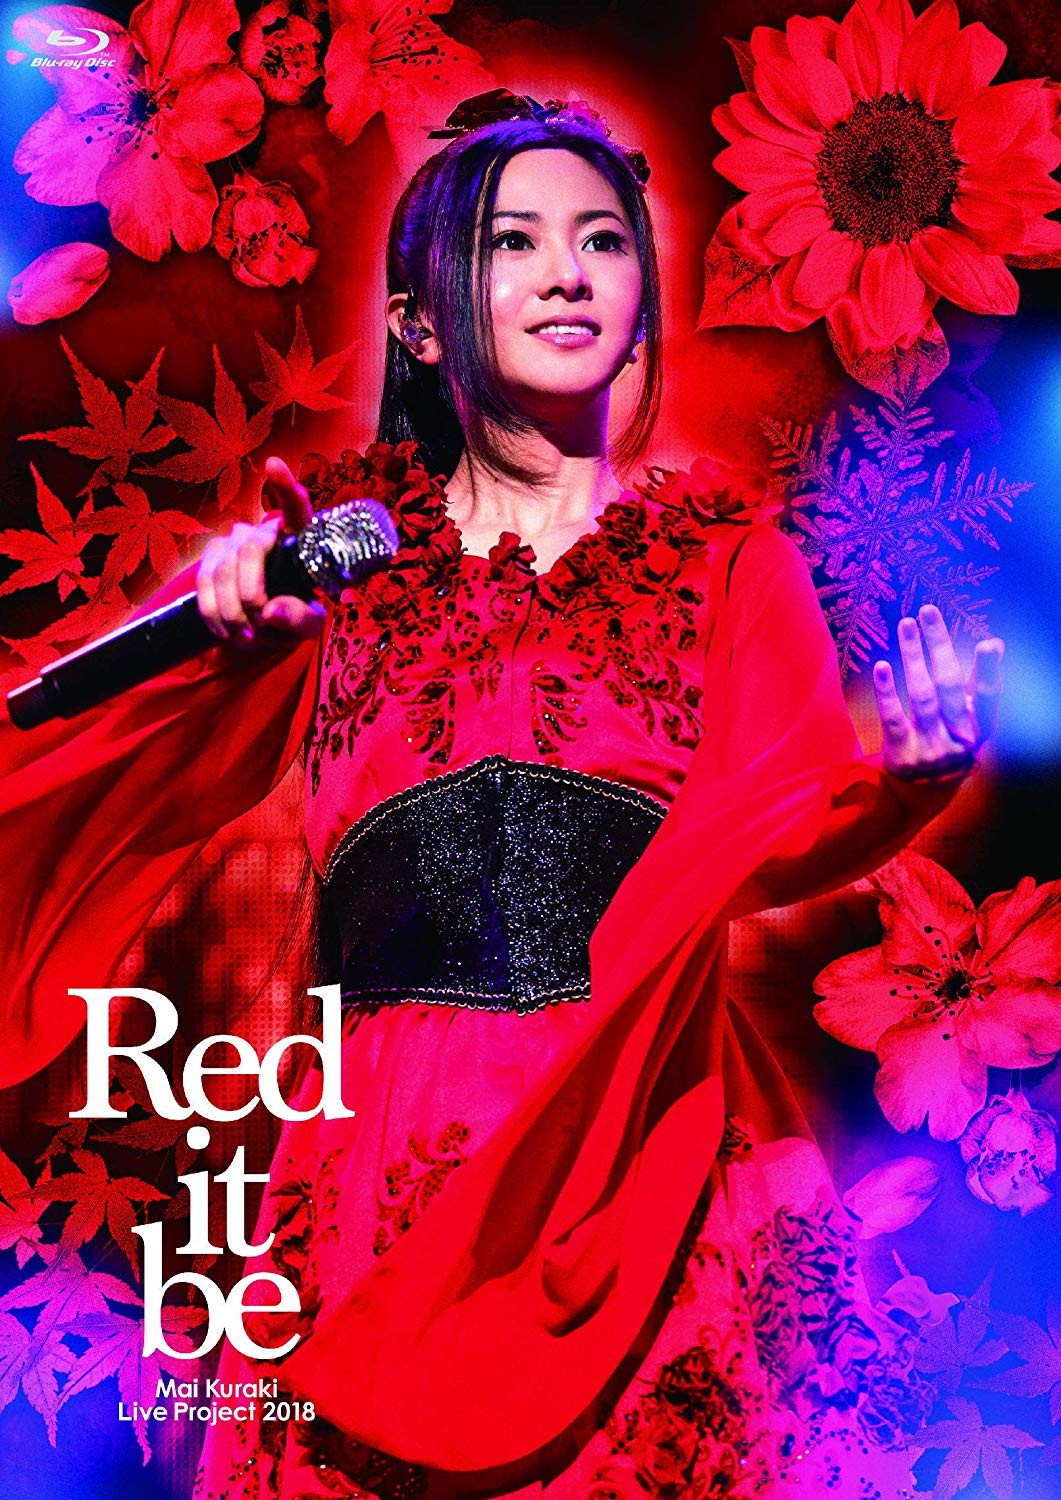 "倉木麻衣 (Mai Kuraki) – Mai Kuraki Live Project 2018 ""Red it be ~君想ふ 春夏秋冬~"" (2019) [Blu-ray ISO + MP4 + FLAC]"